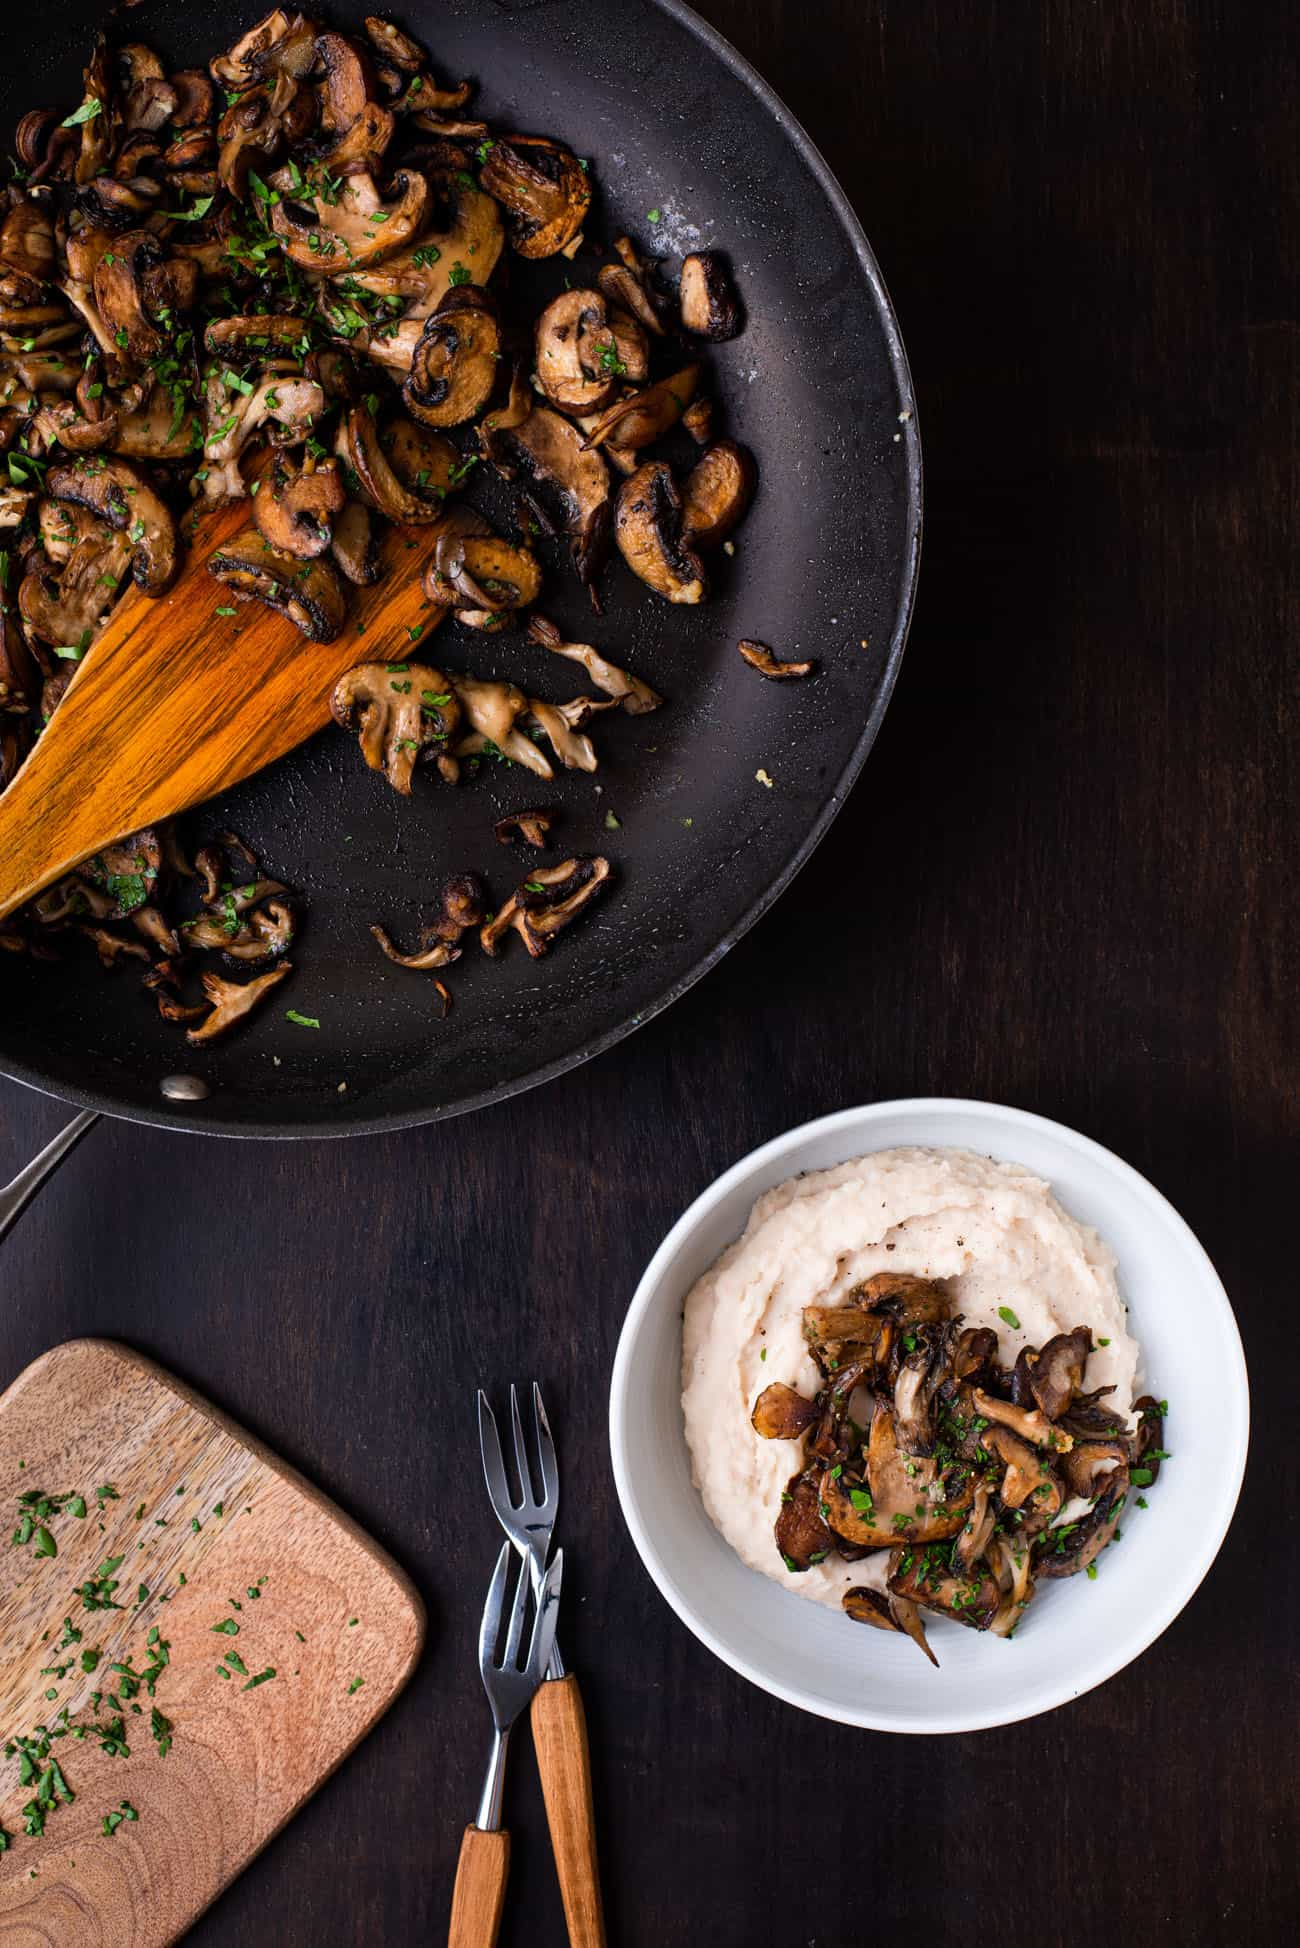 Sauteed mushrooms in a skillet next to a white bowl and chopped parsley, on a dark wooden table